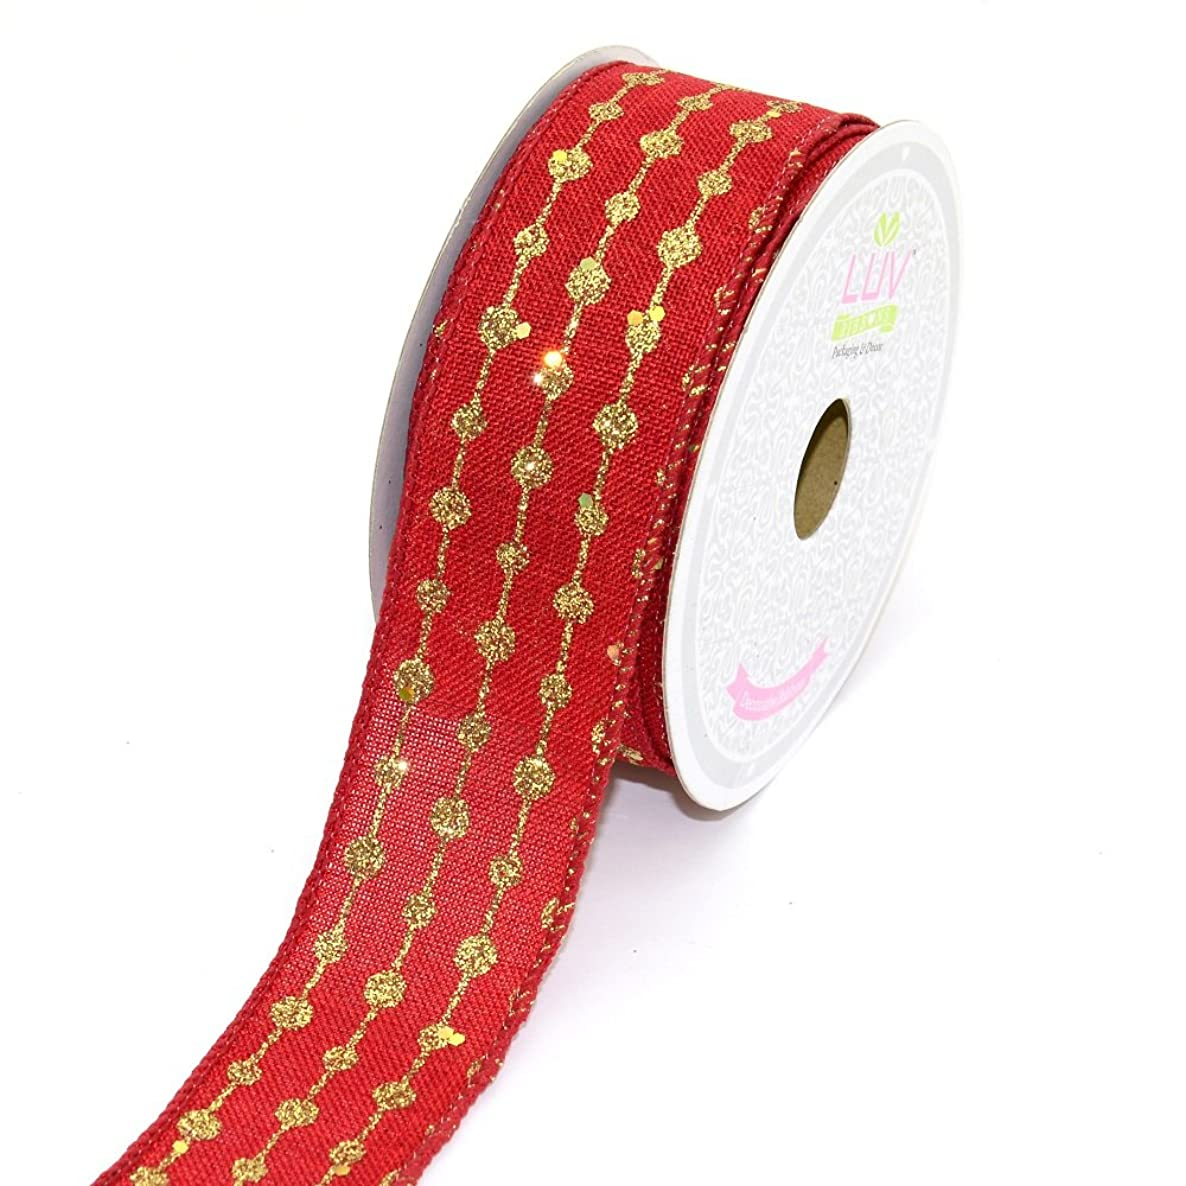 LUV RIBBONS by Creative Ideas, Canvas 1-1/2-Inch Glitter Dots Ribbon, 10 Yards, Red